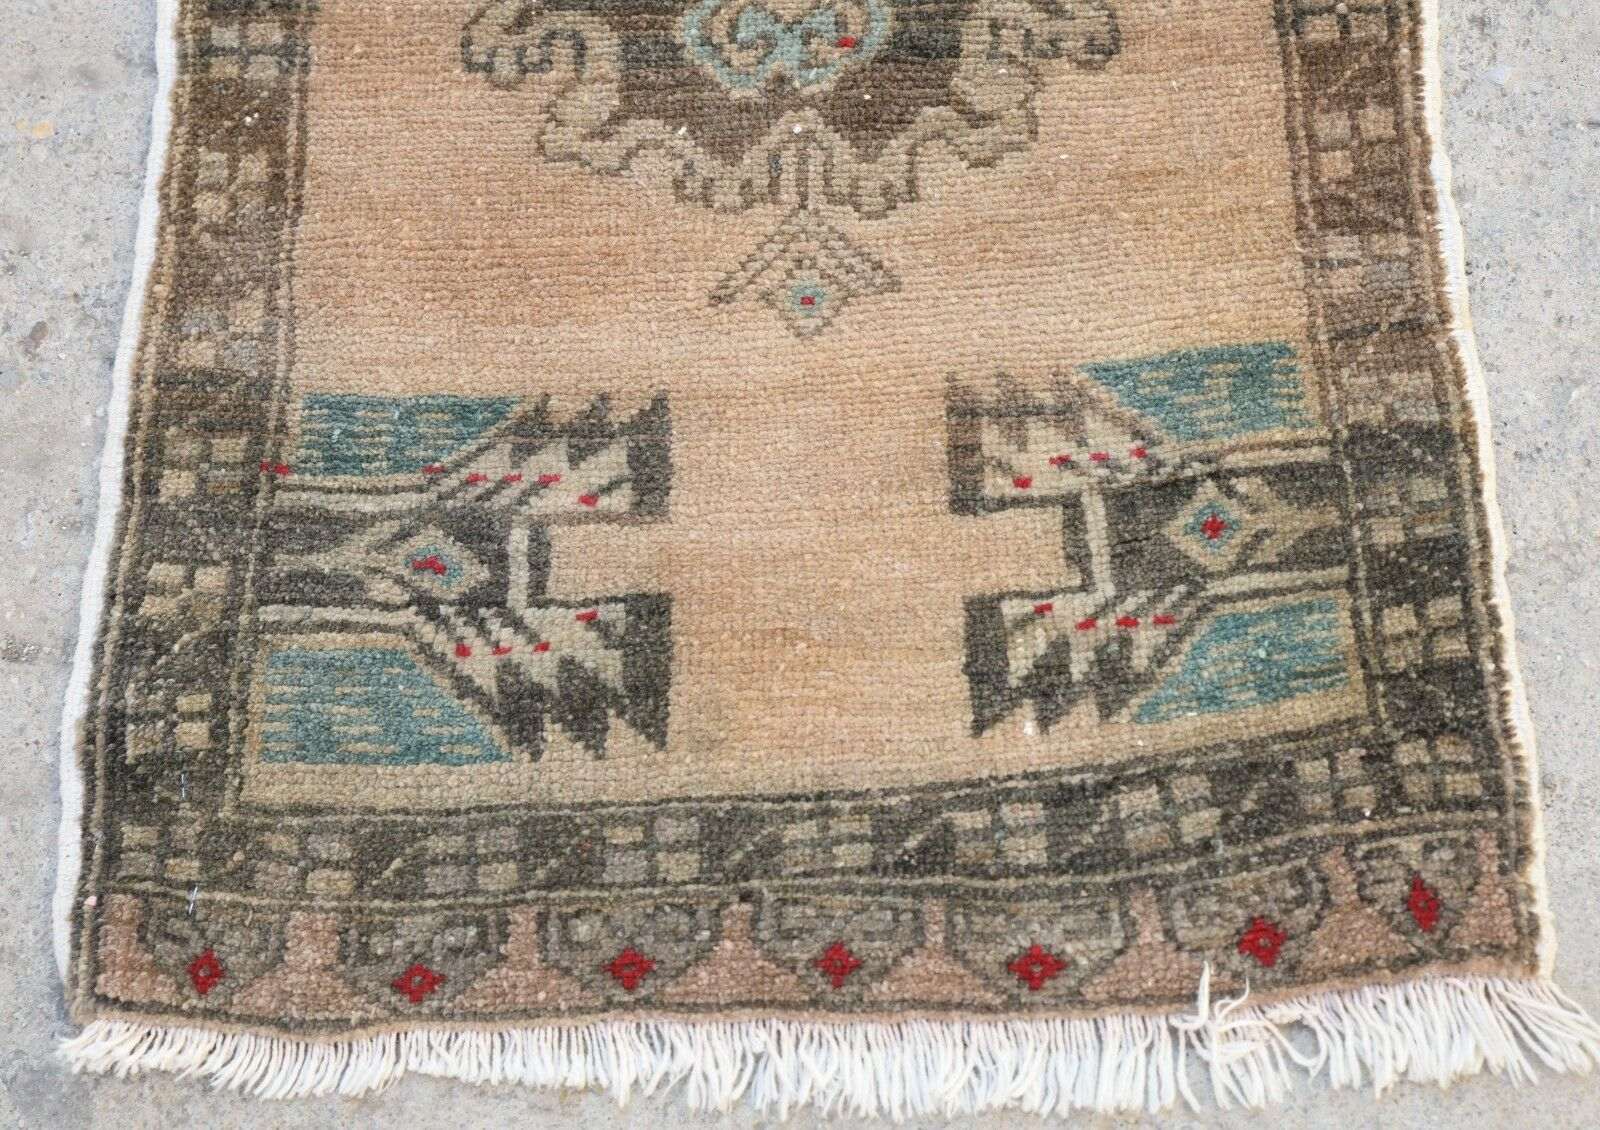 Old Old Old Door Mat Rug, Turkish Old Small Rug, Vintage Pastel Bohemian Rug, 1'8x3'3 913034